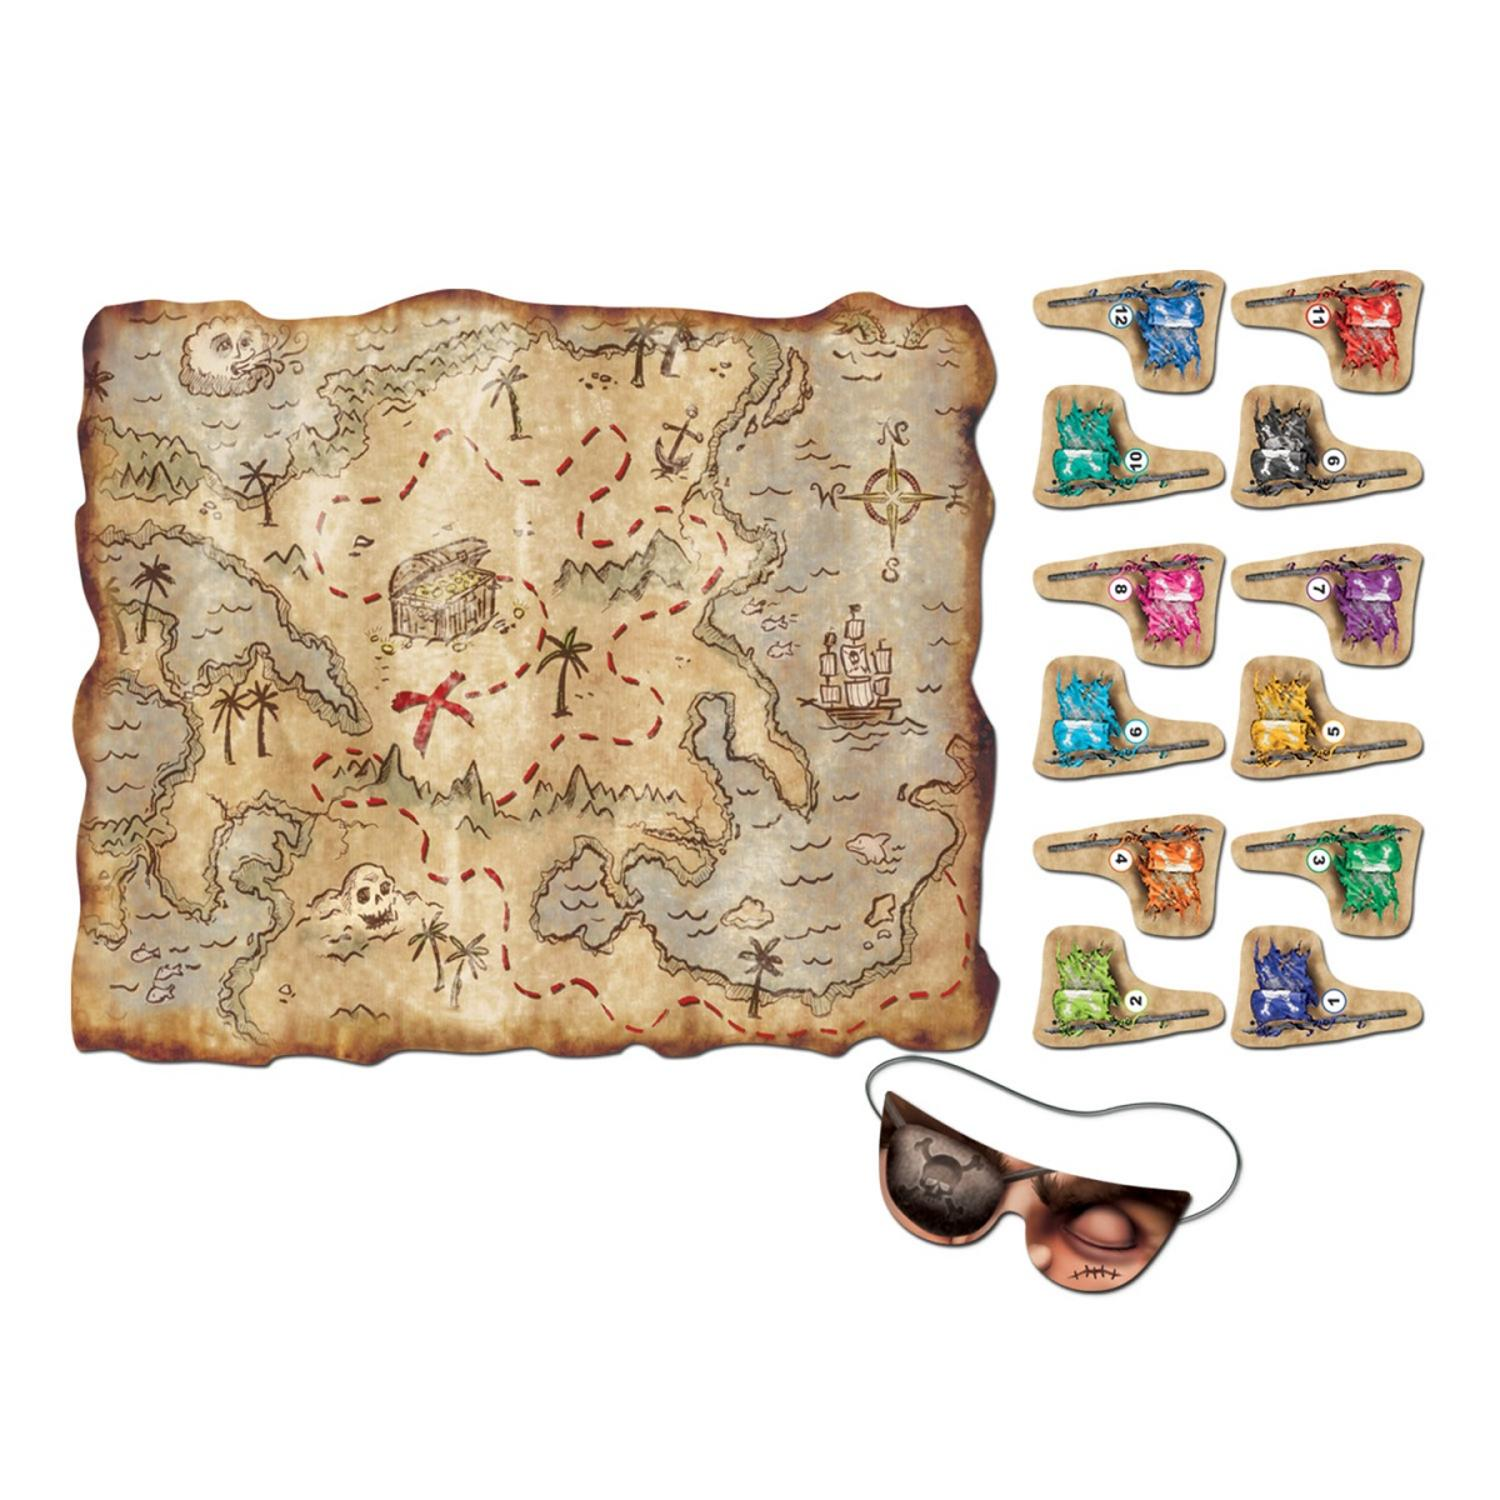 Club Pack of 24 Pin the flag on the Treasure Map Party Game